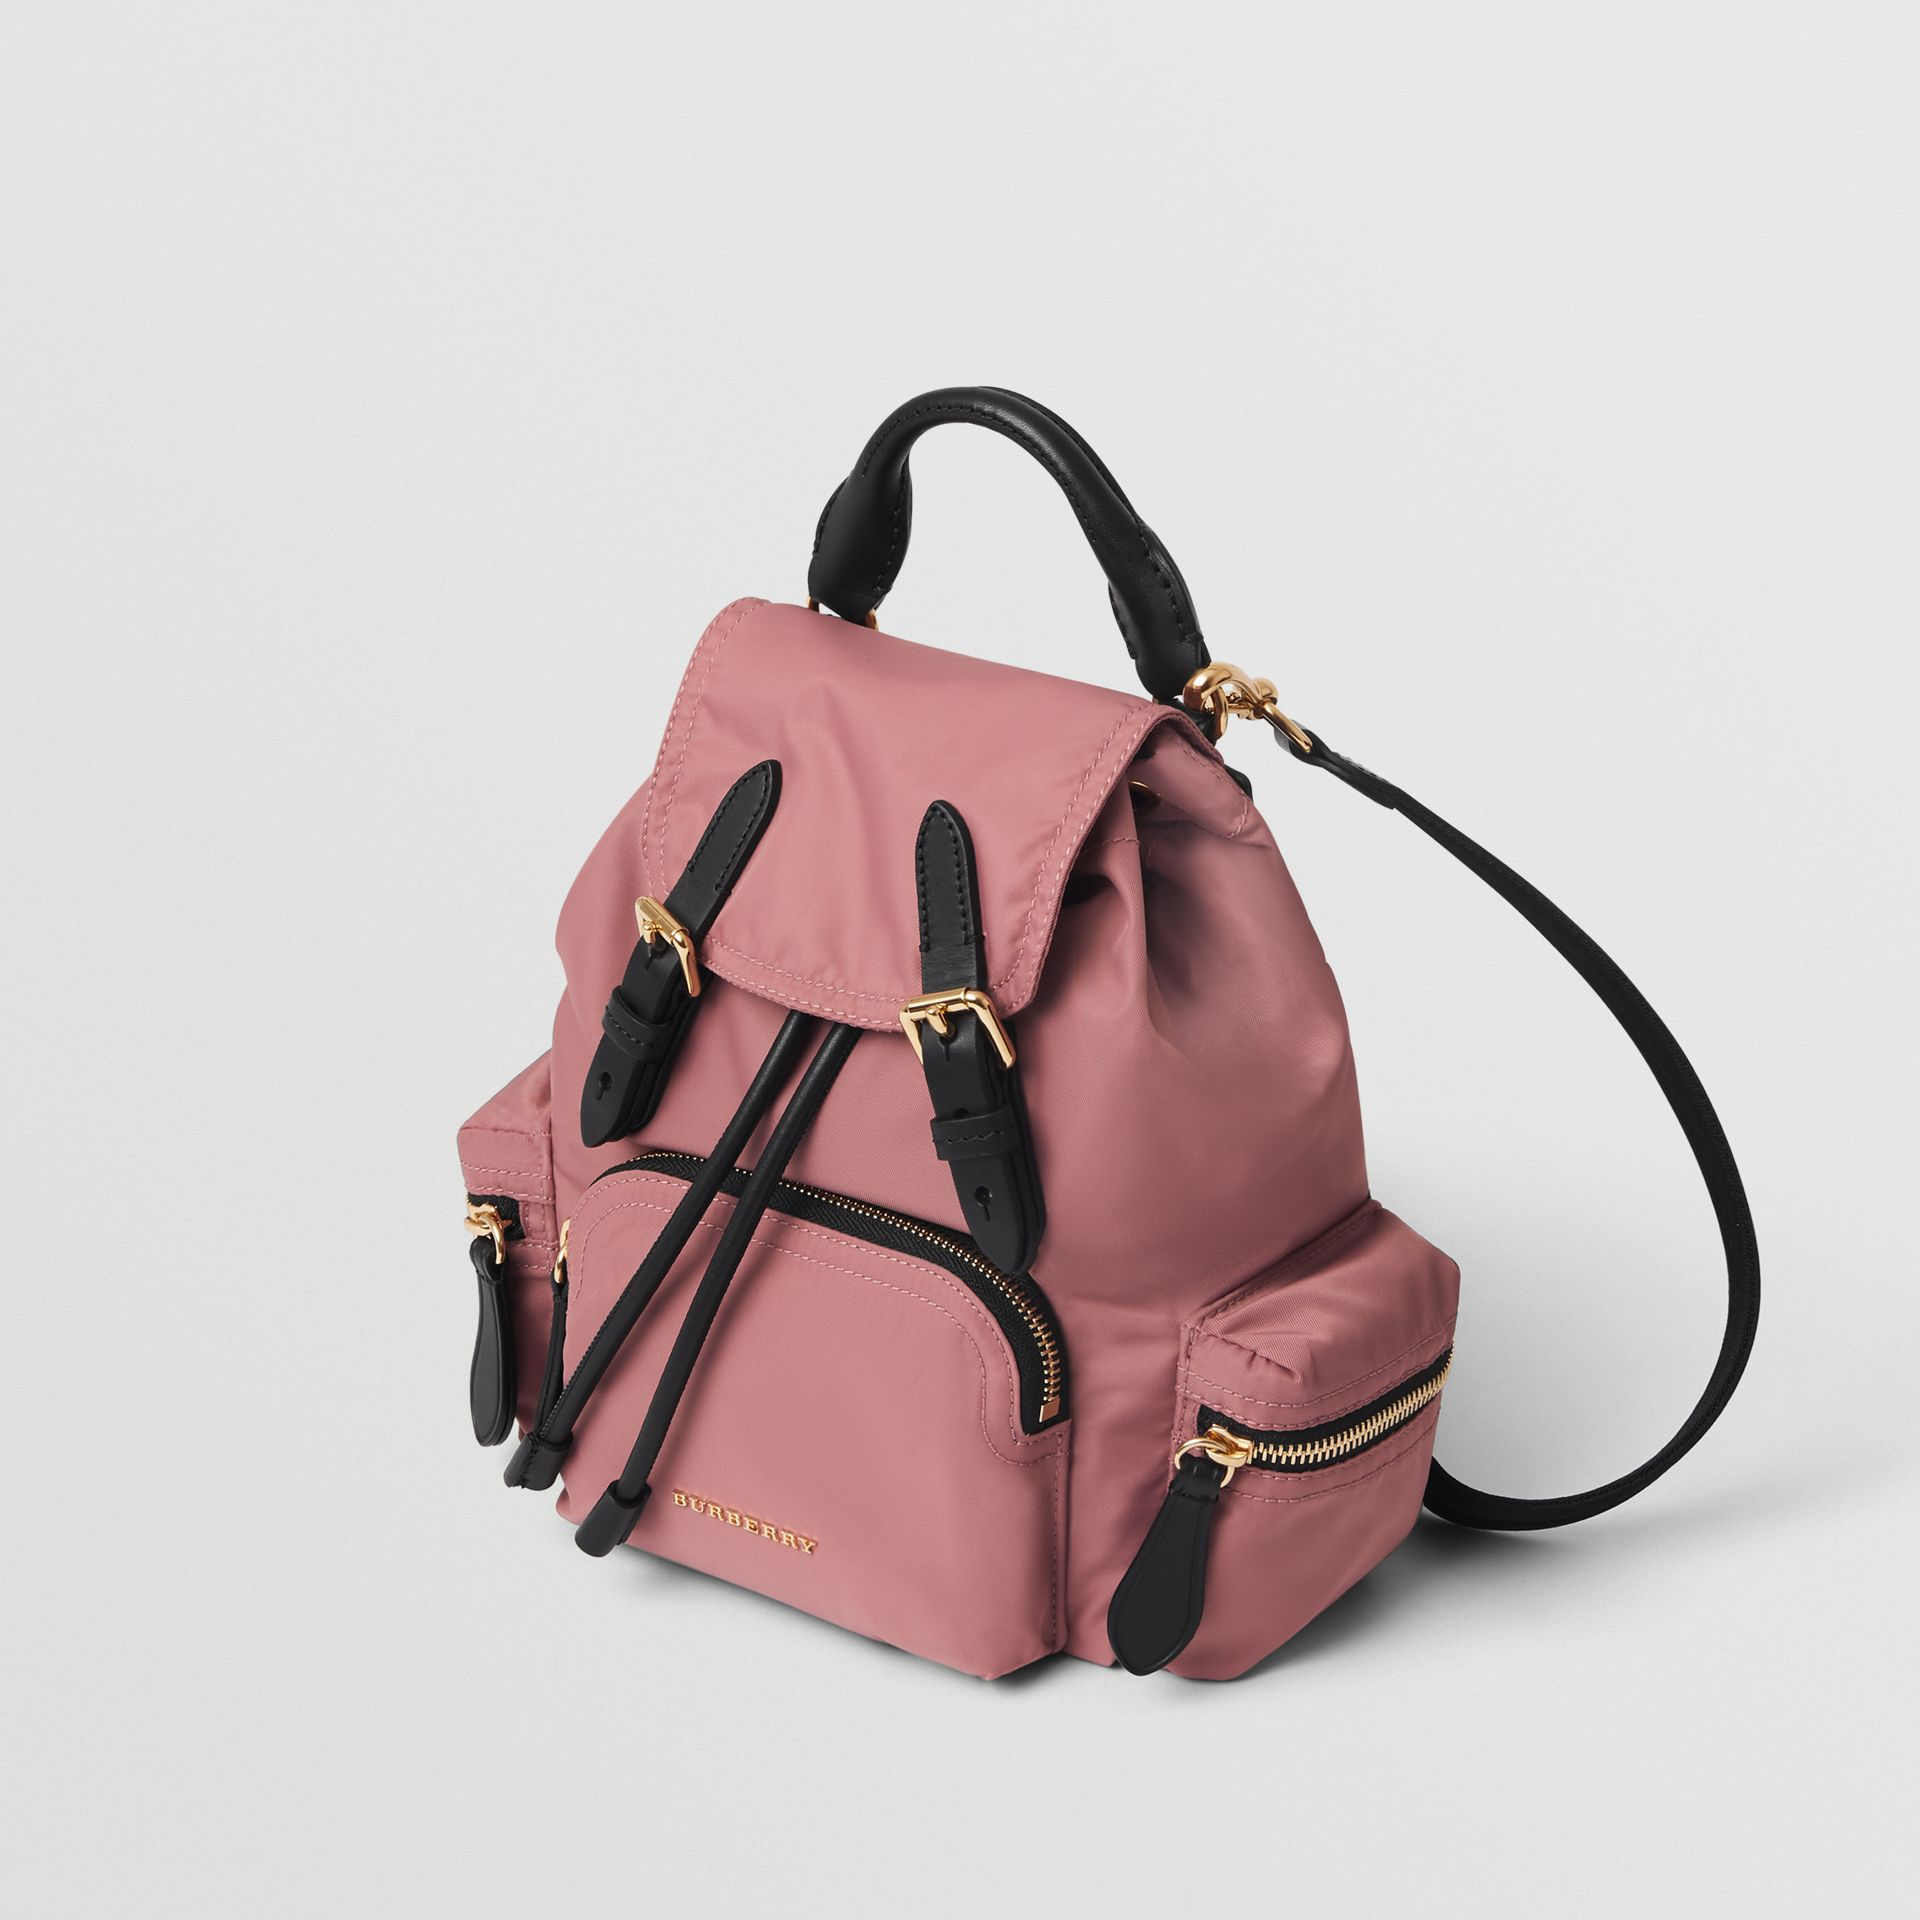 The Small Crossbody Rucksack in Nylon in Mauve Pink - Women | Burberry - gallery image 4